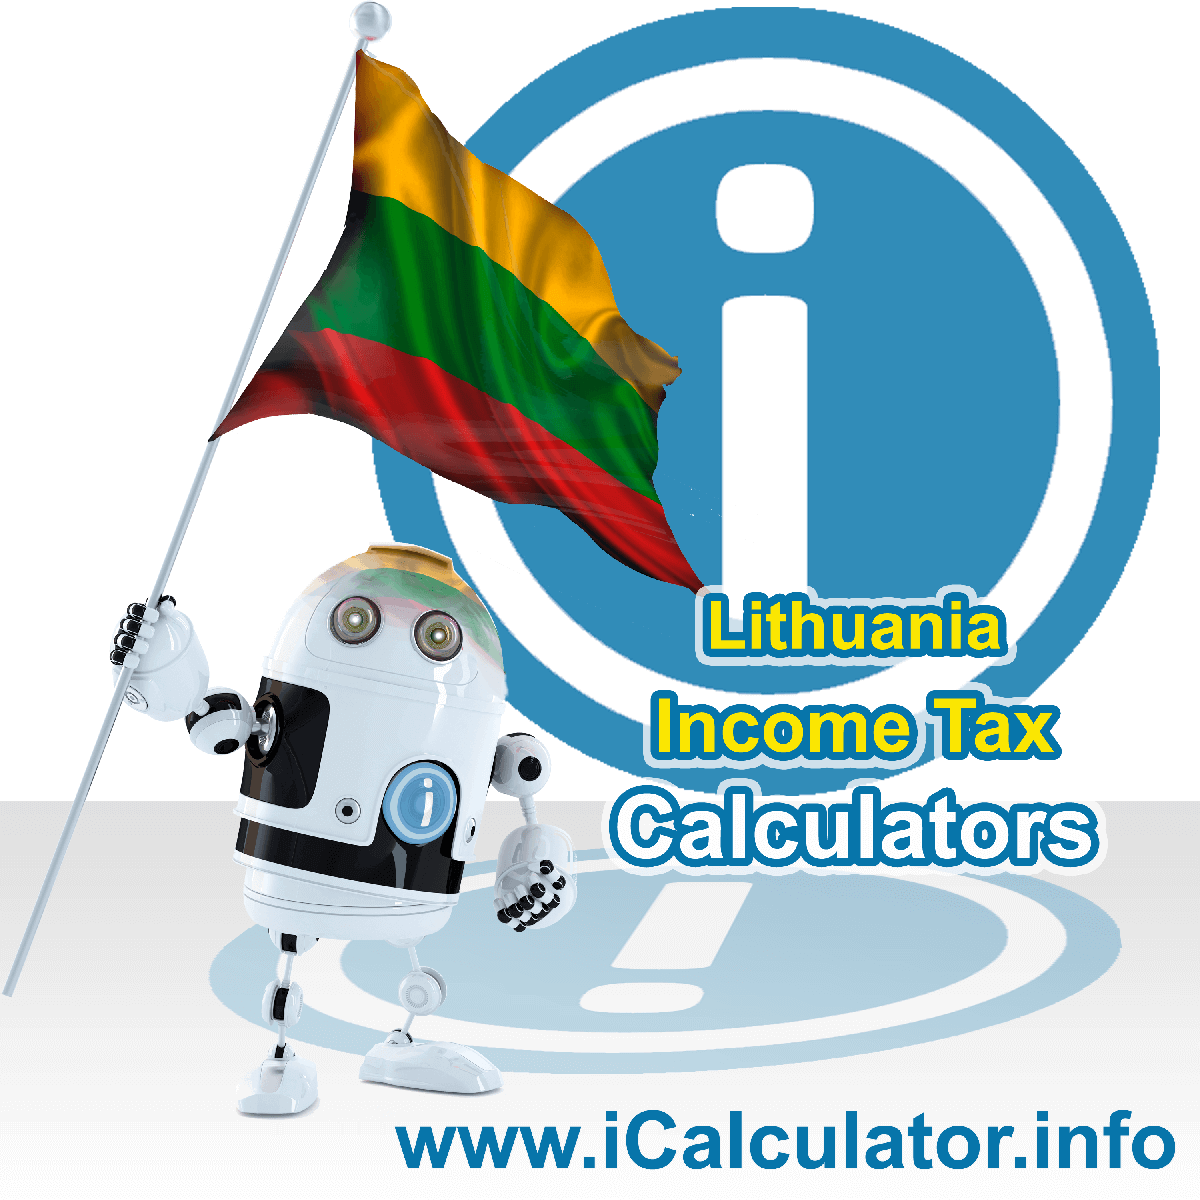 Lithuania Income Tax Calculator. This image shows a new employer in Lithuania calculating the annual payroll costs based on multiple payroll payments in one year in Lithuania using the Lithuania income tax calculator to understand their payroll costs in Lithuania in 2020